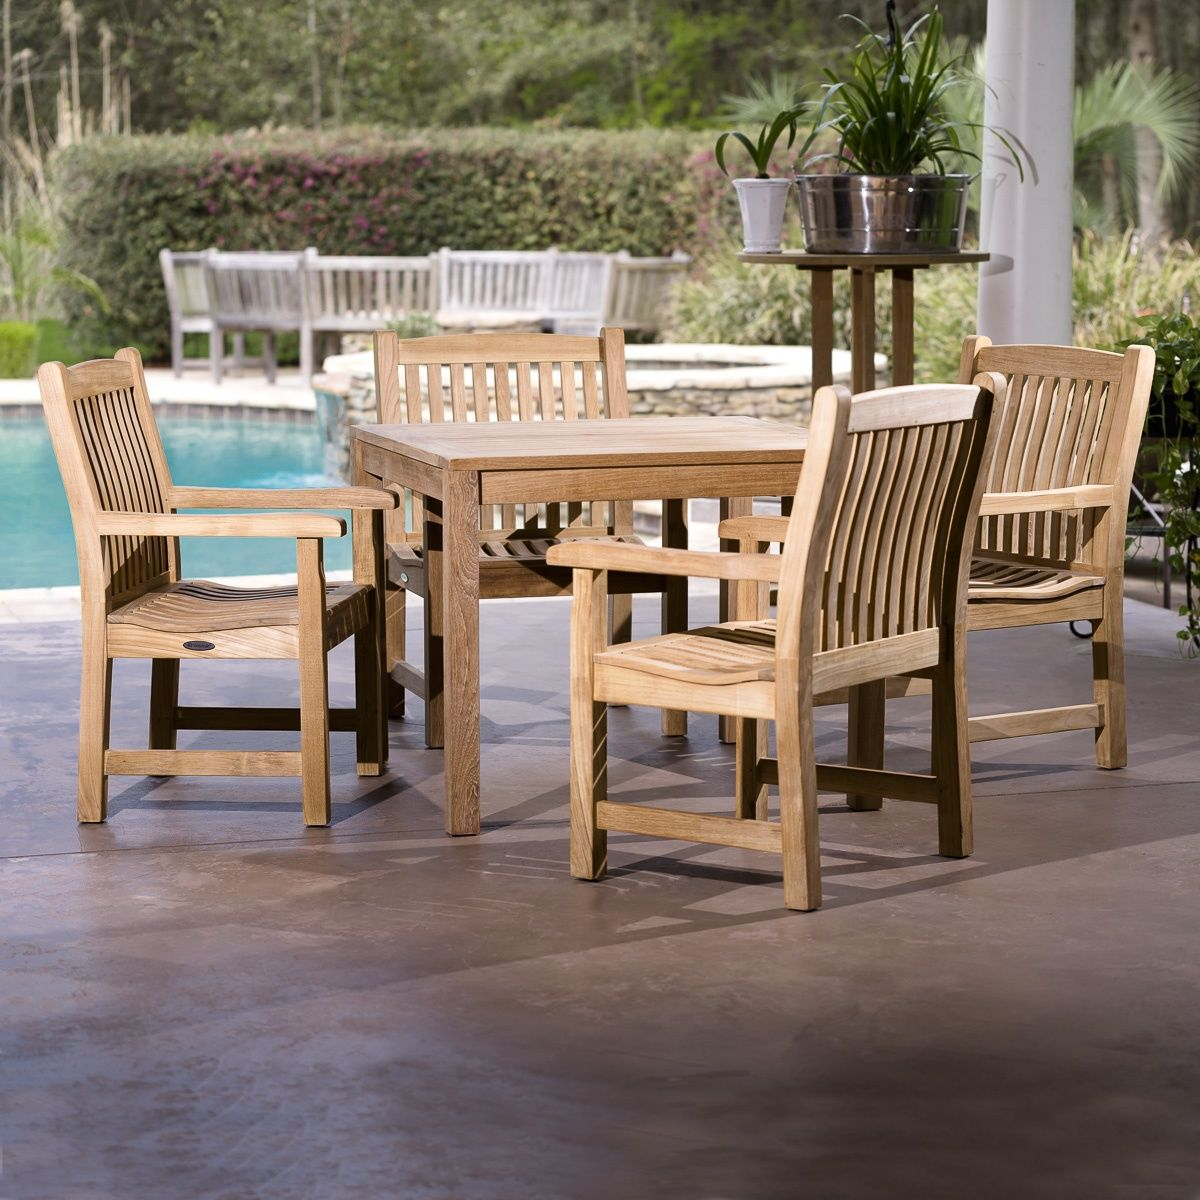 Square Teak Table & 4 Chairs